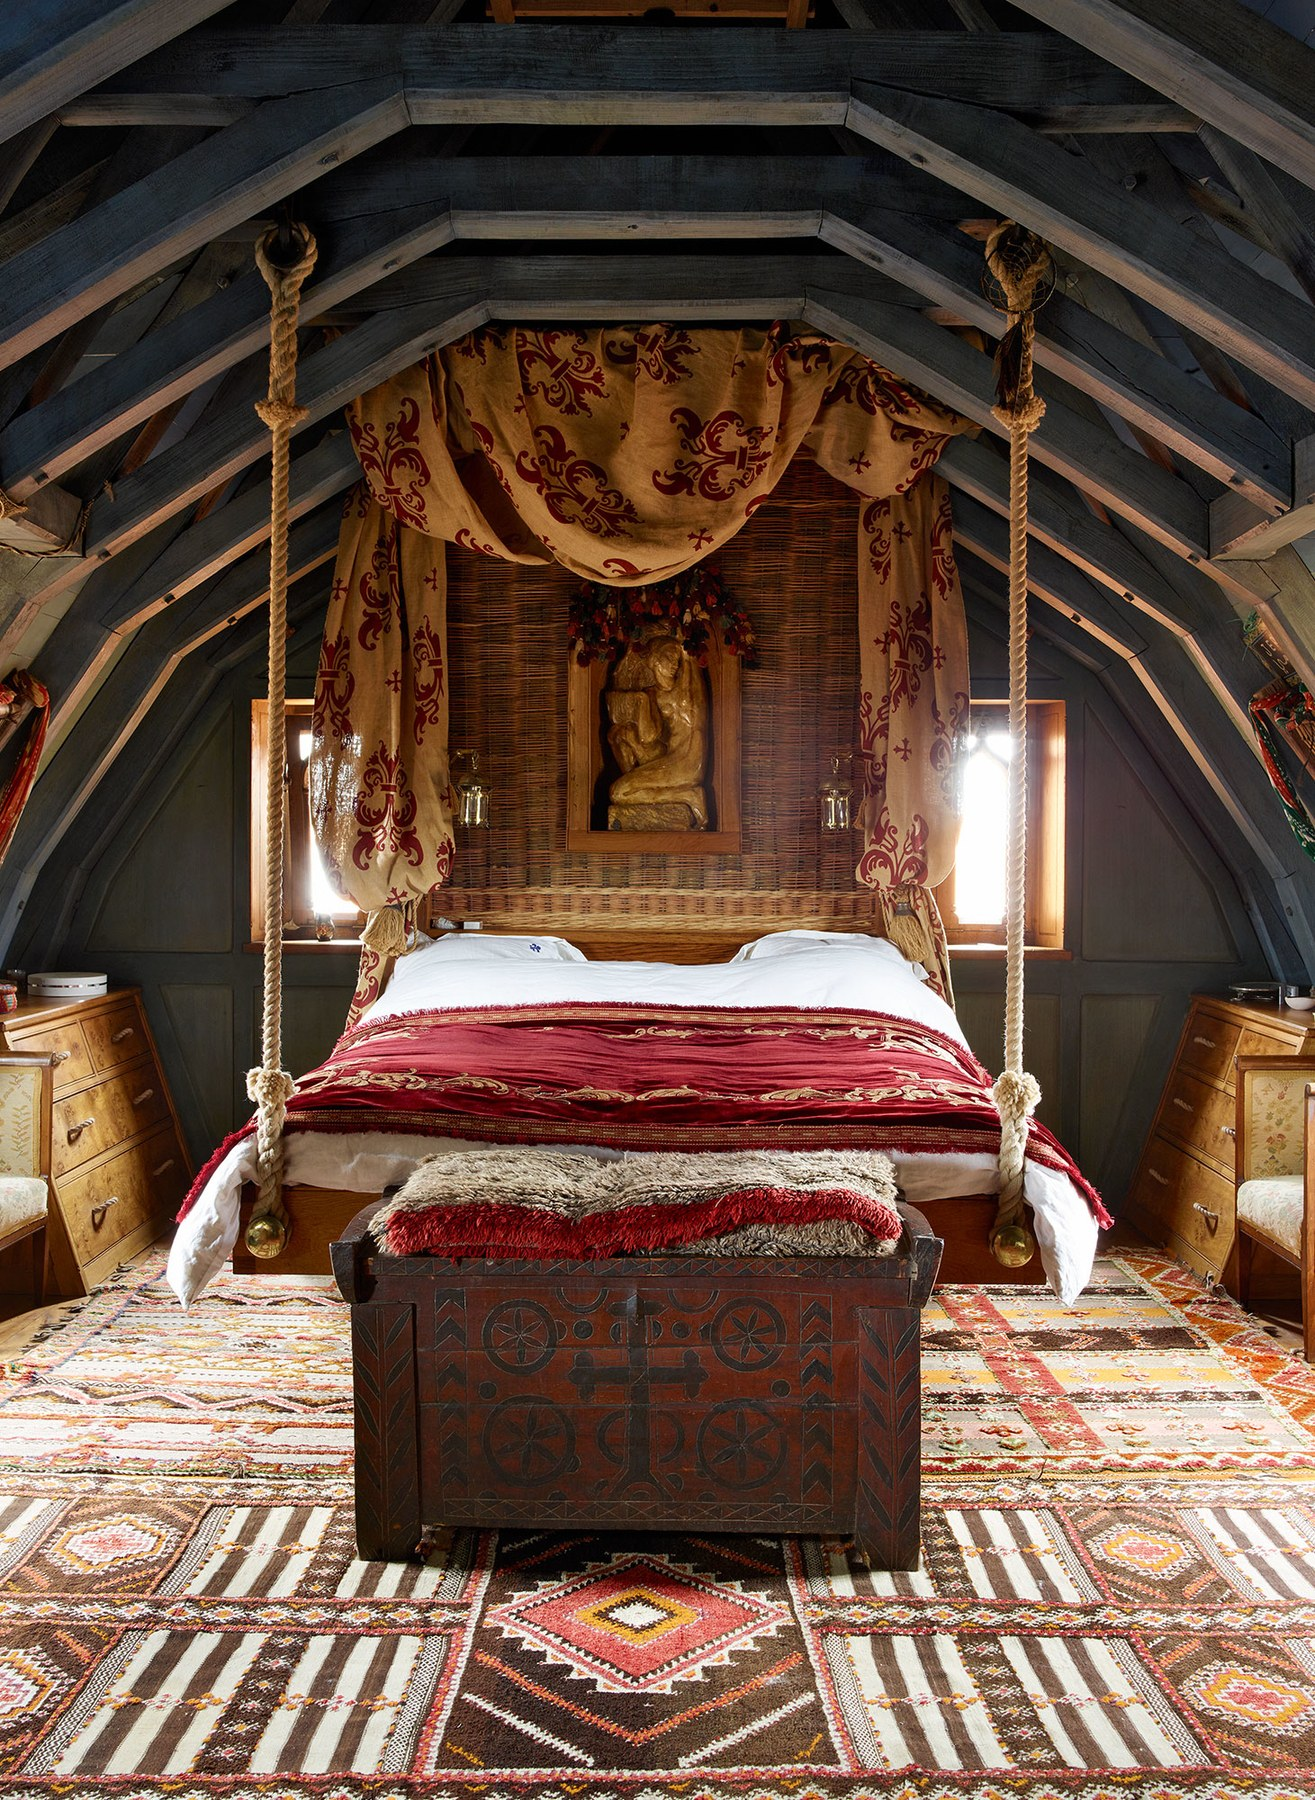 Castle master bedroom - The Master Bedroom With Irons S Suspended Bed Photo Photograph By Simon Upton